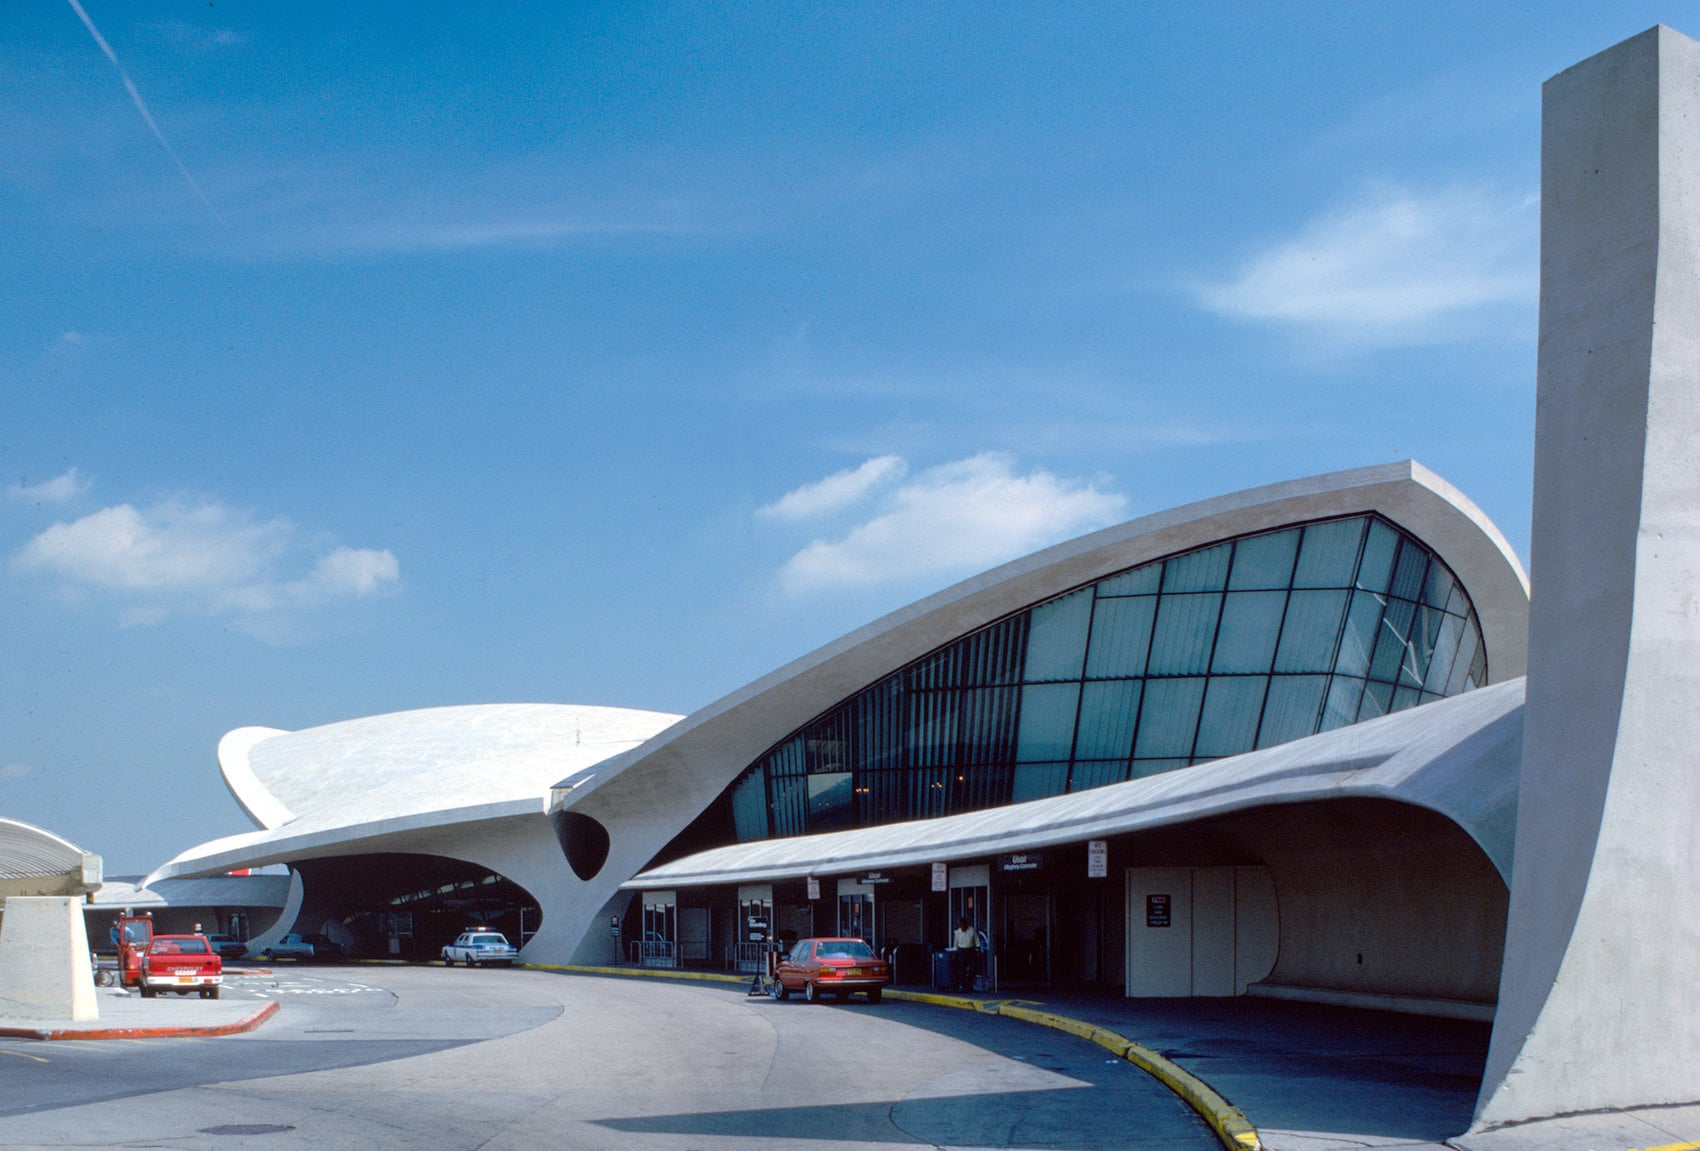 Completed front view of TWA terminal at JFK airport